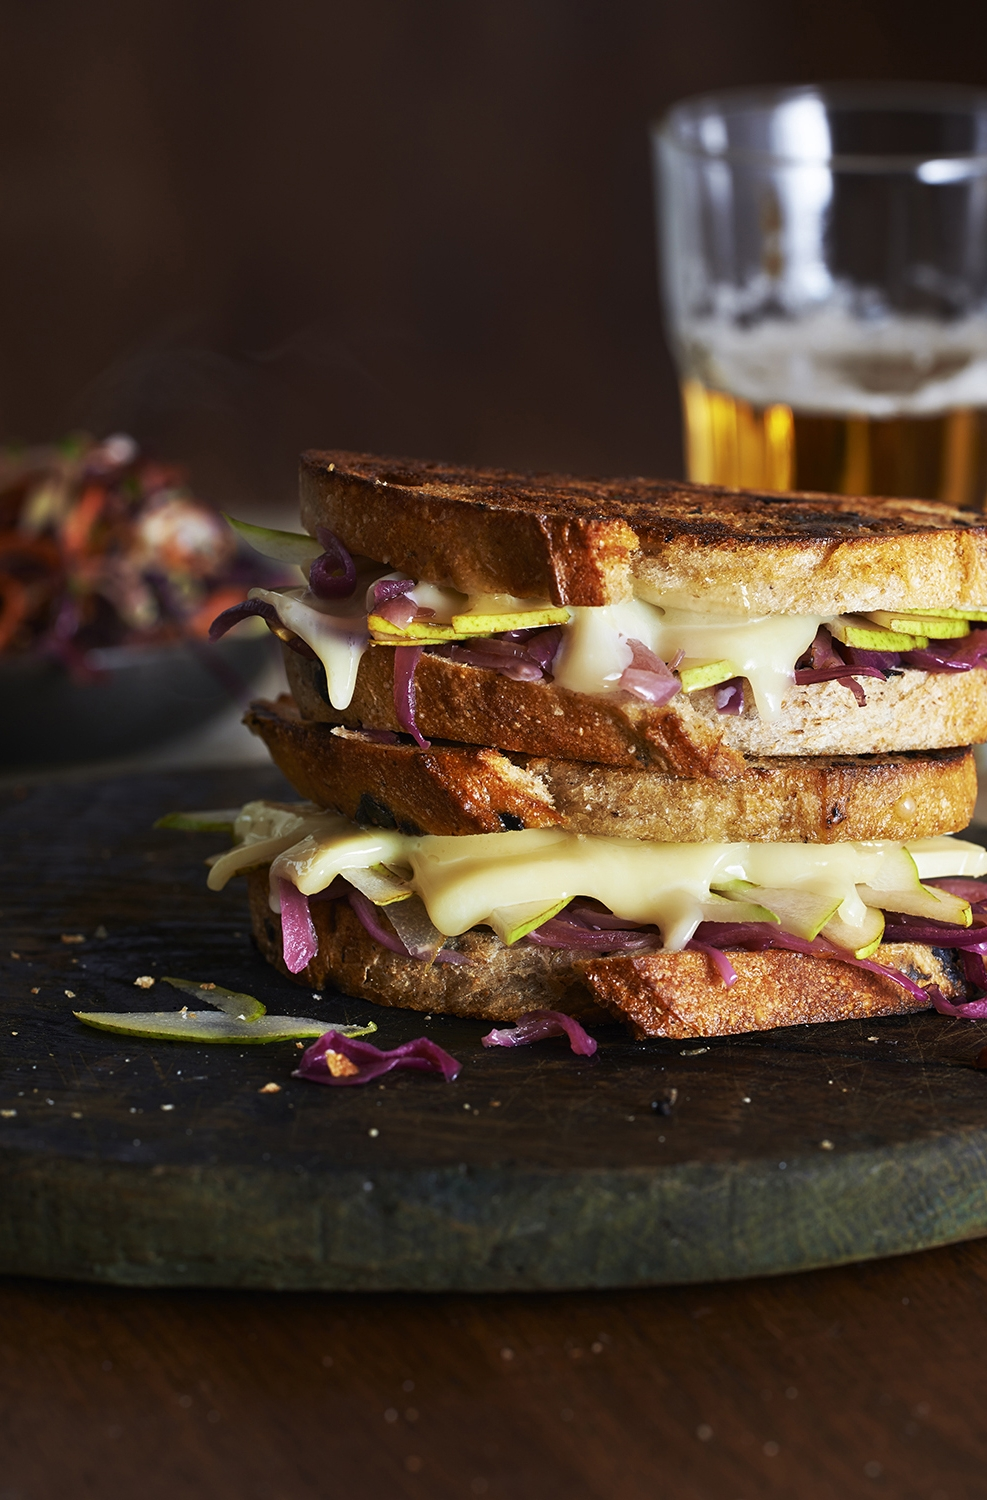 13-PC_Grilled Cheese_049_retouch_v1-v2.jpg